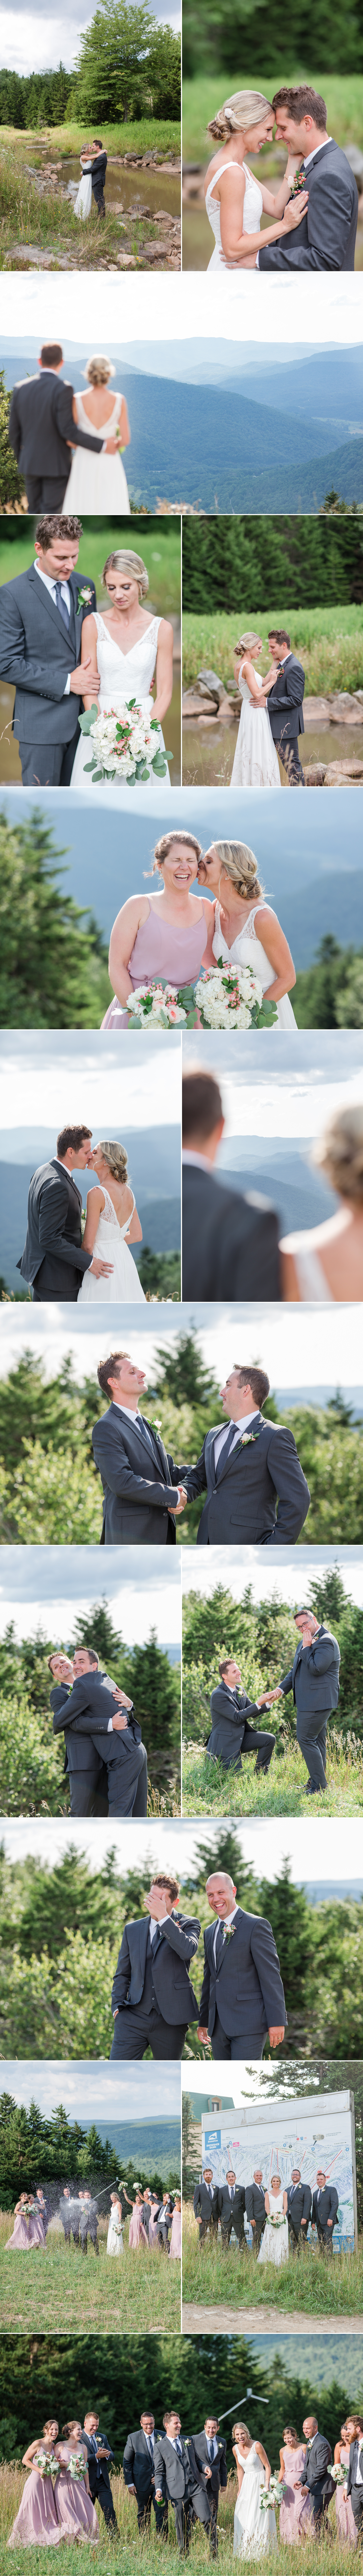 bridal party shuttle party, mountain wedding, snowshoe wv